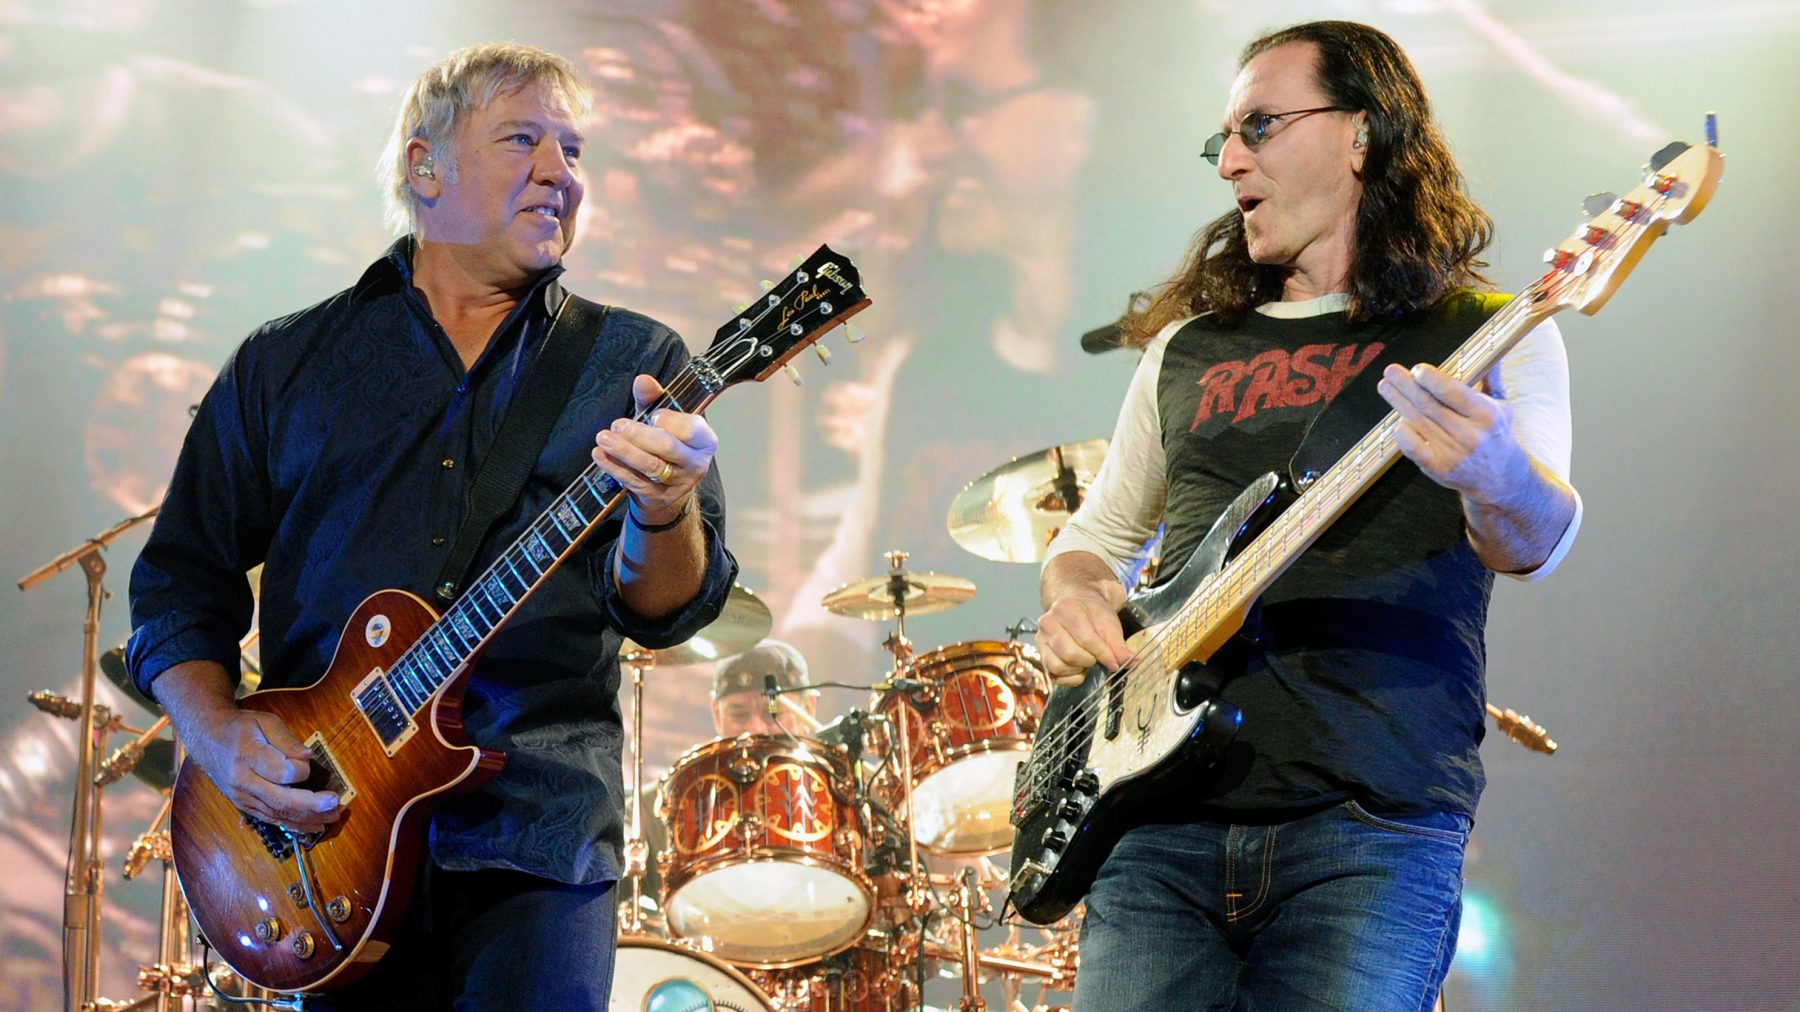 LeeLifeson: Geddy Lee and Alex Lifeson possible project ...